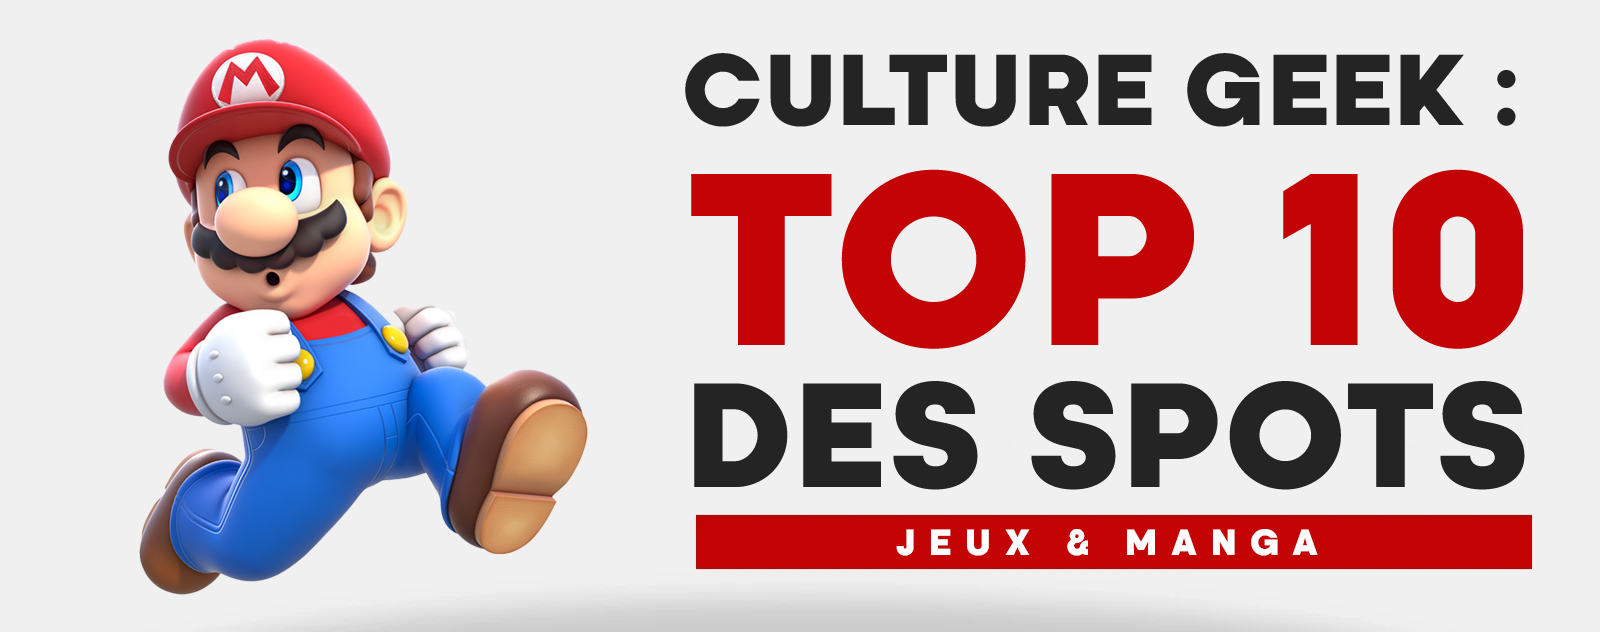 Top 10 des Spots de la Culture Geek Japon